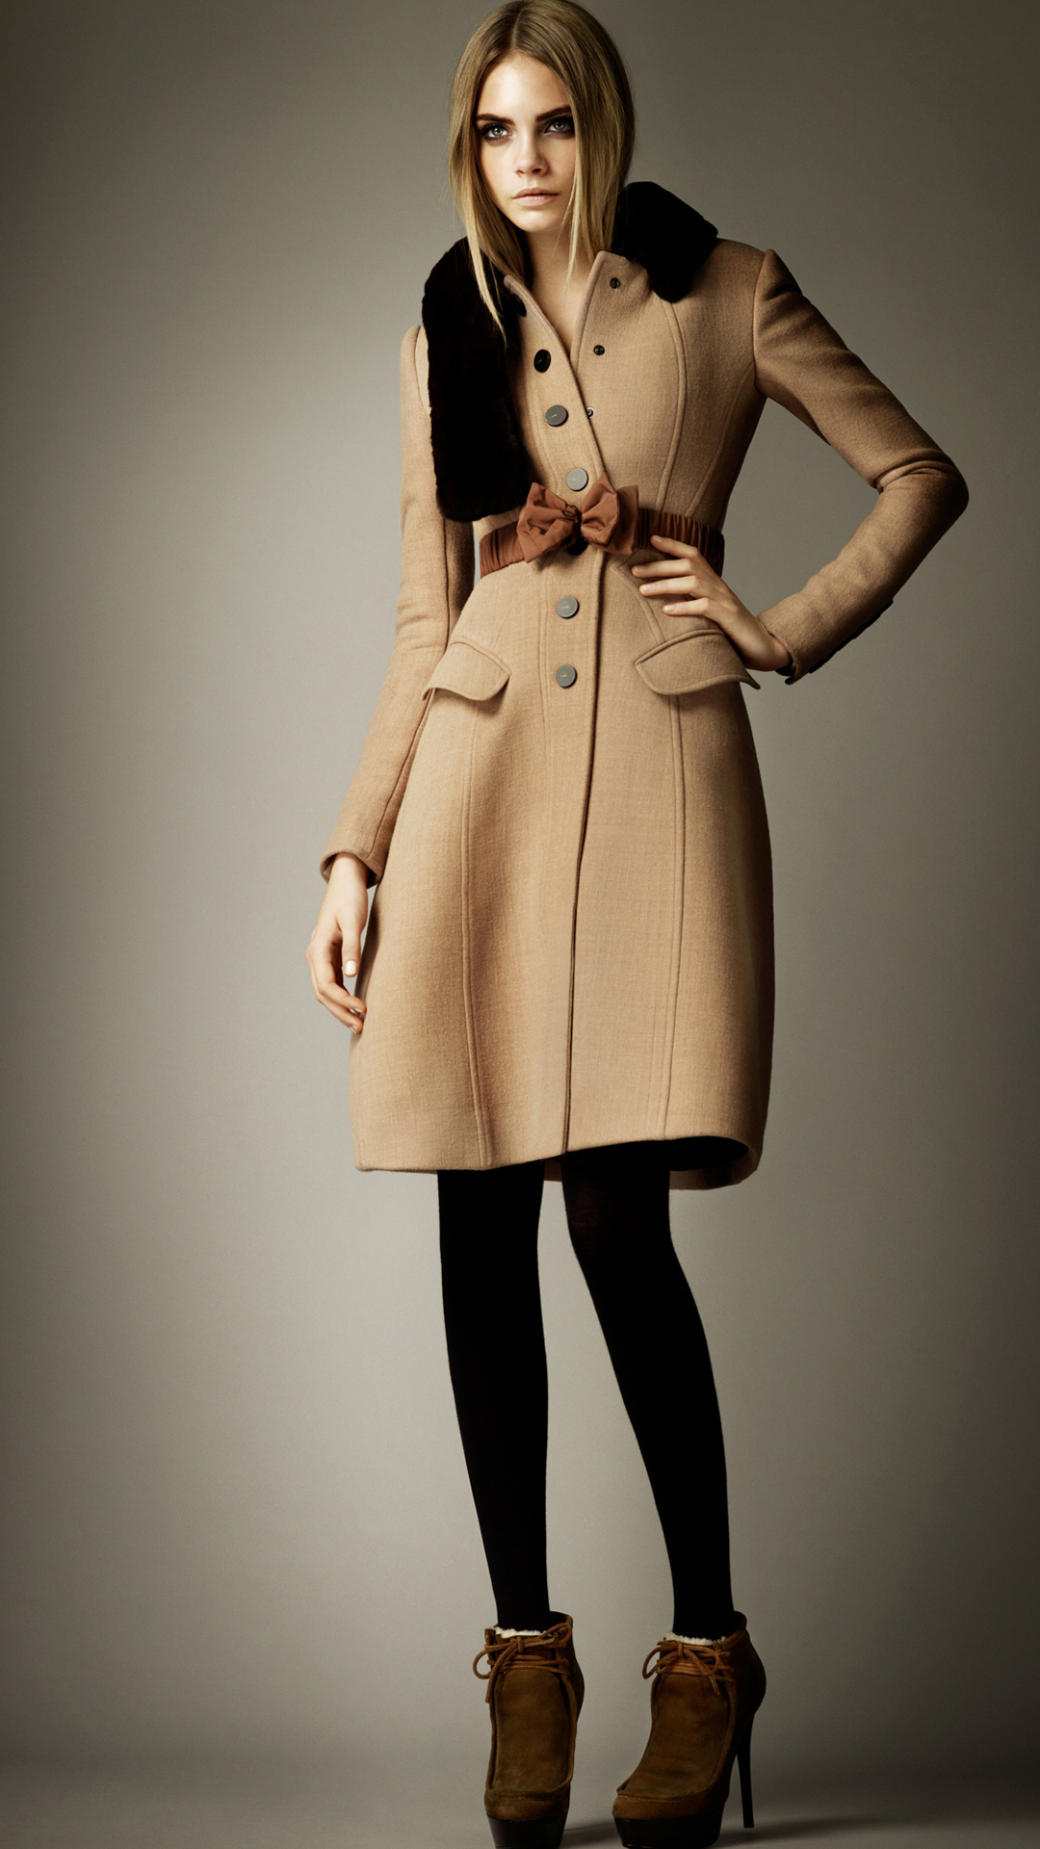 burberry - photo #17